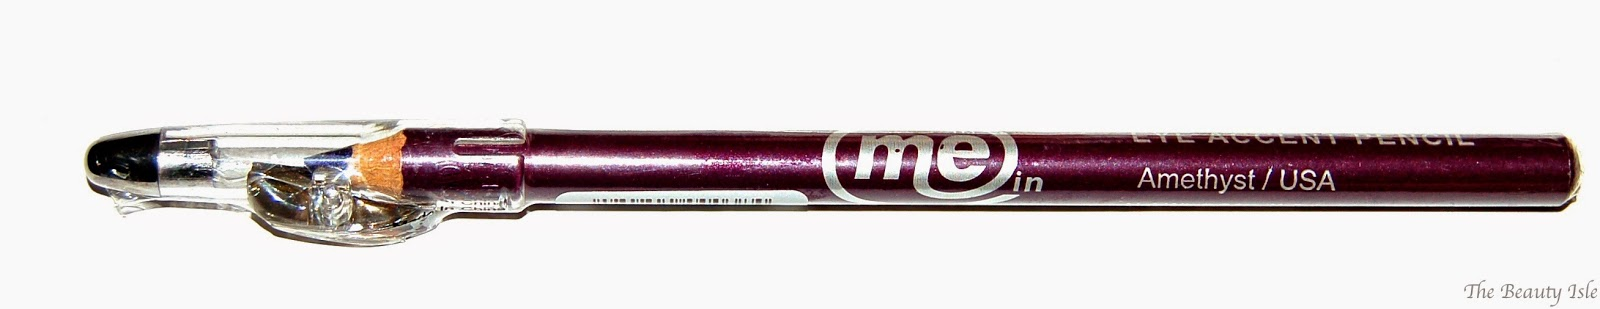 Pencil Me In Cosmetics Eye Liner in Amethyst